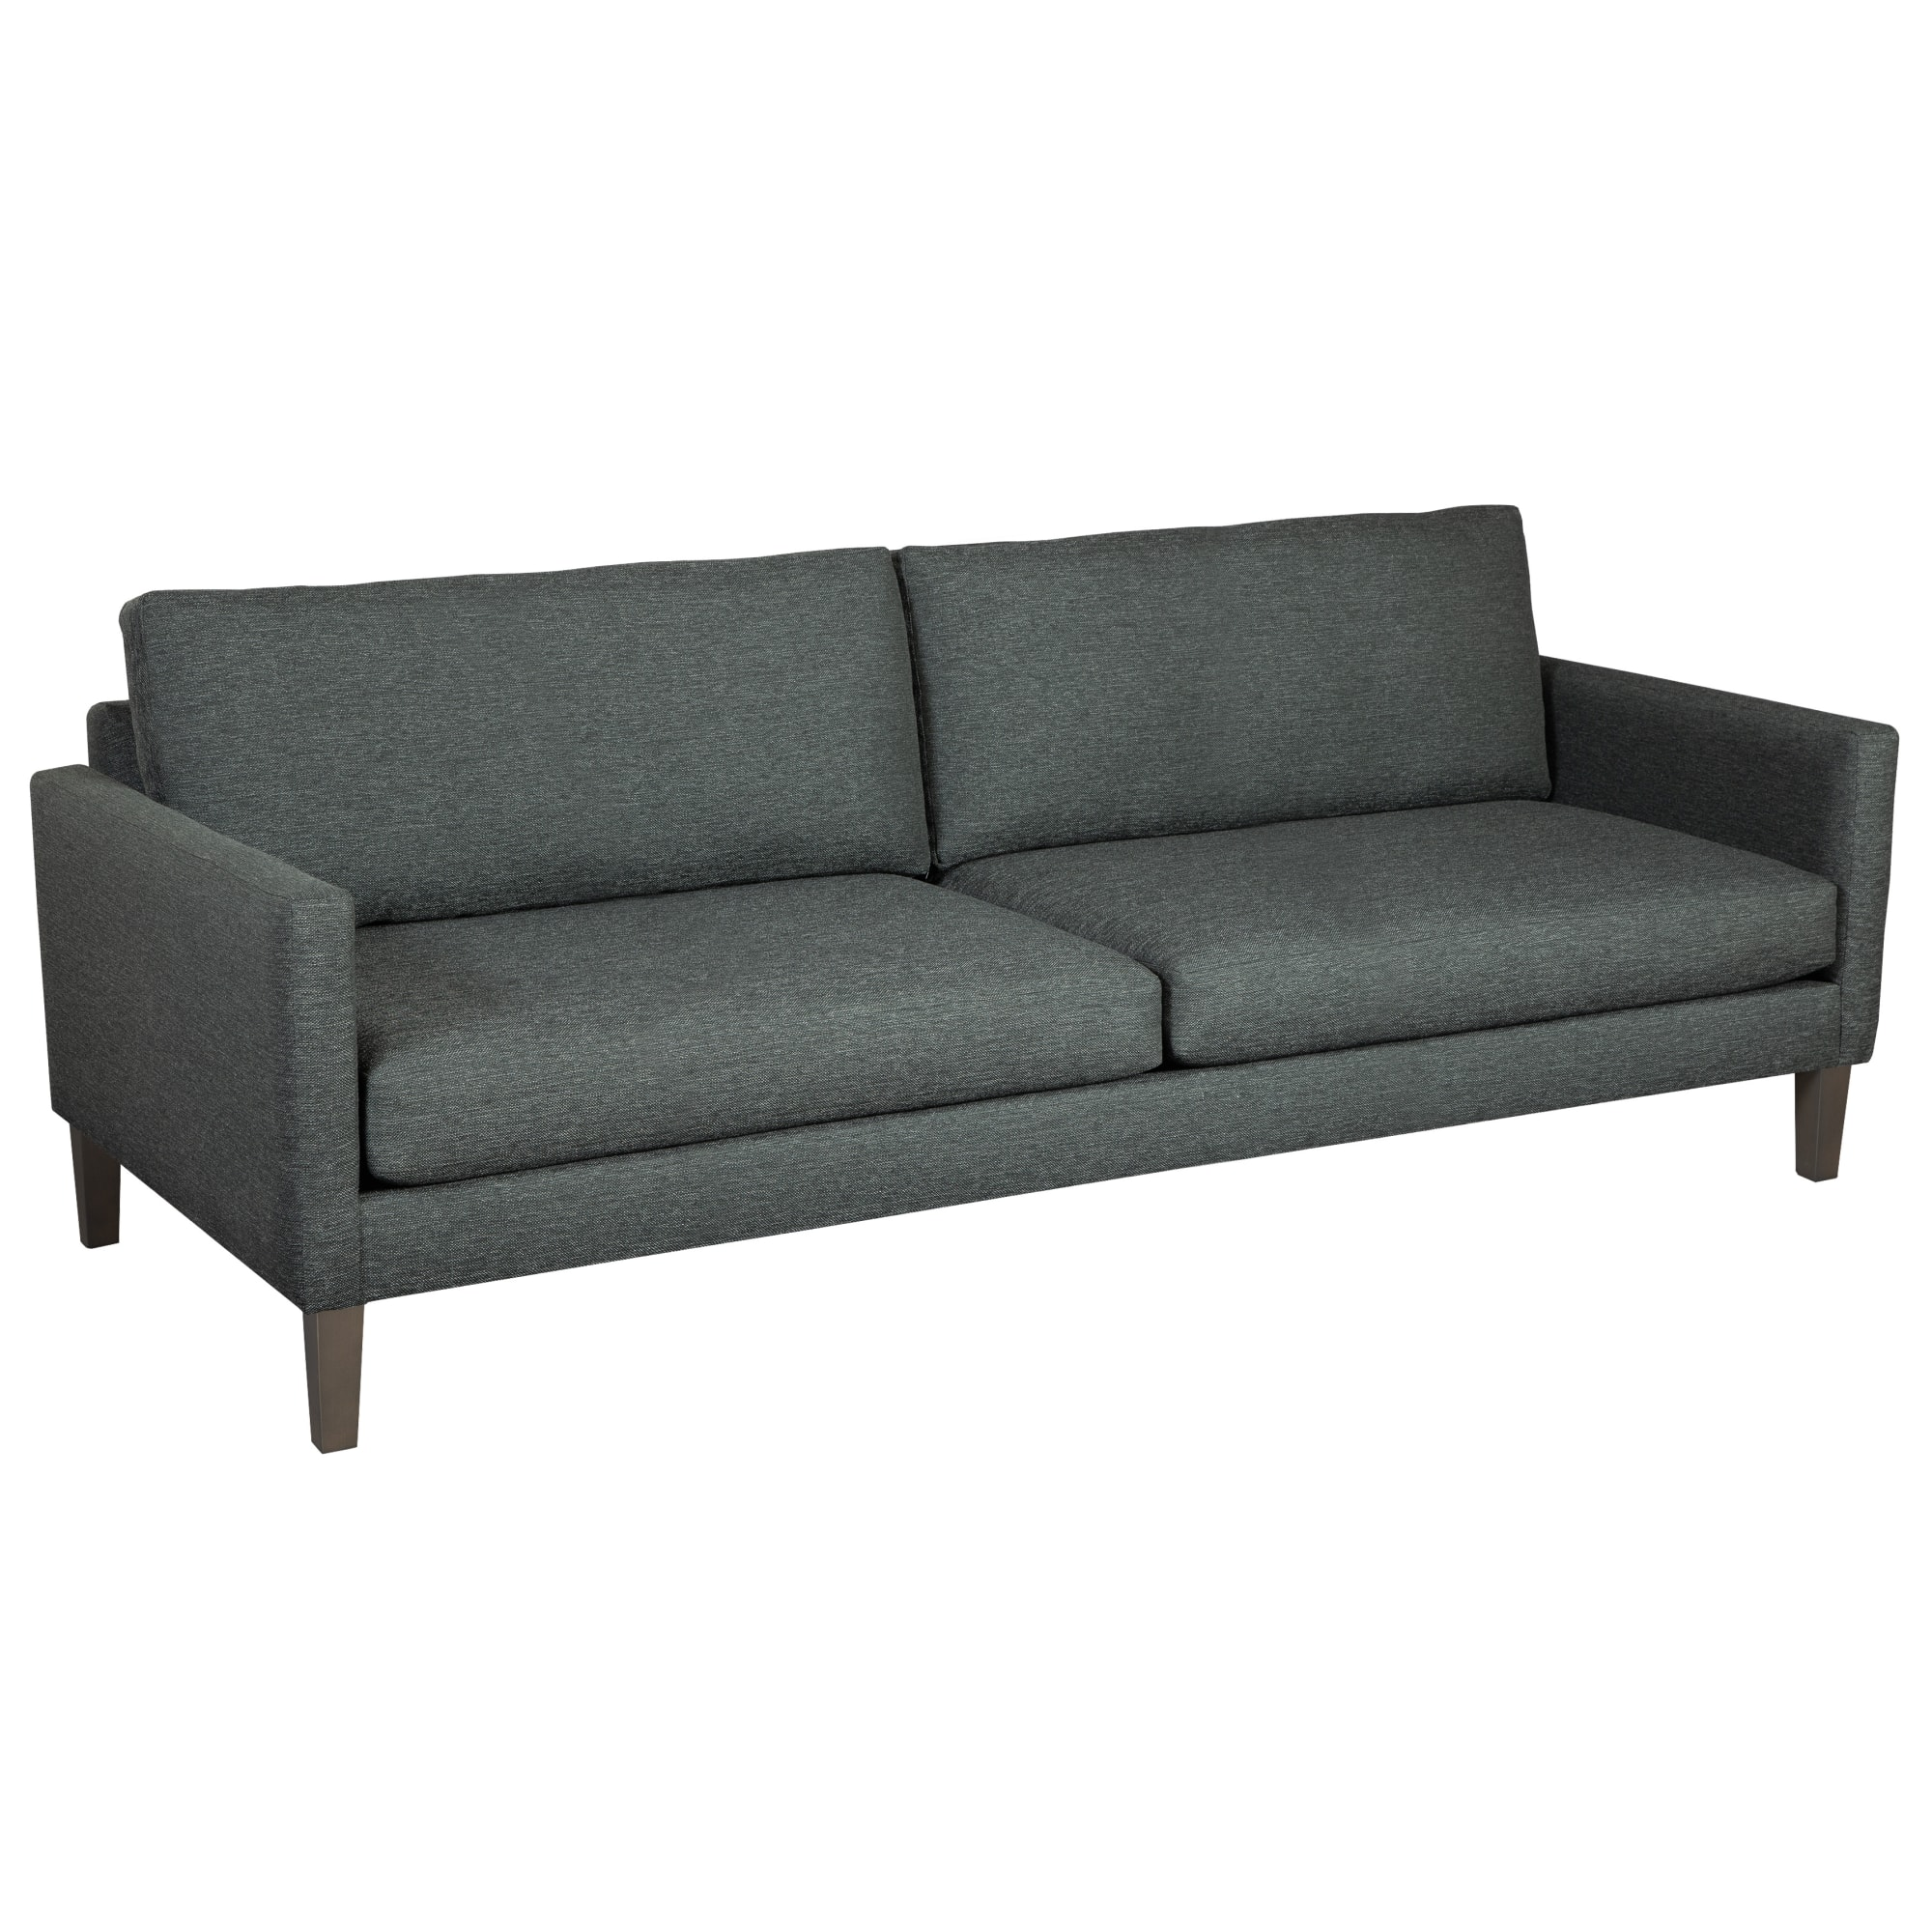 "Image for 174185 Metro 85"" Track Arm Sofa from Hekman Official Website"